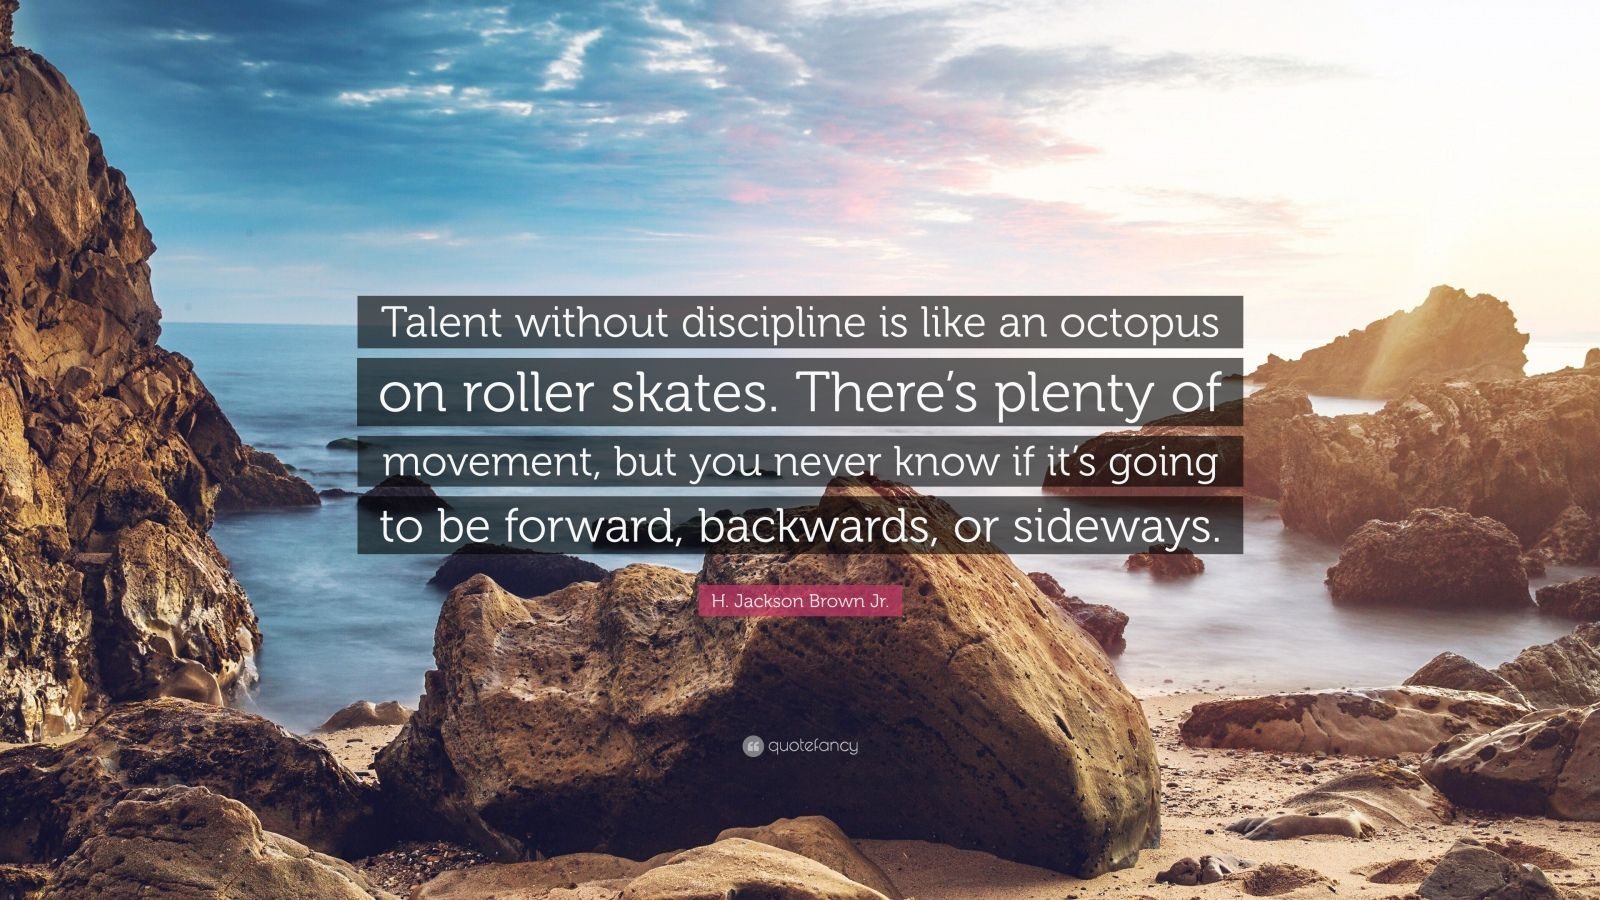 "H. Jackson Brown Jr. Quote: ""Talent without discipline is like an octopus on roller skates. There's plenty of movement, but you never know if it's going to be forward, backwards, or sideways."""